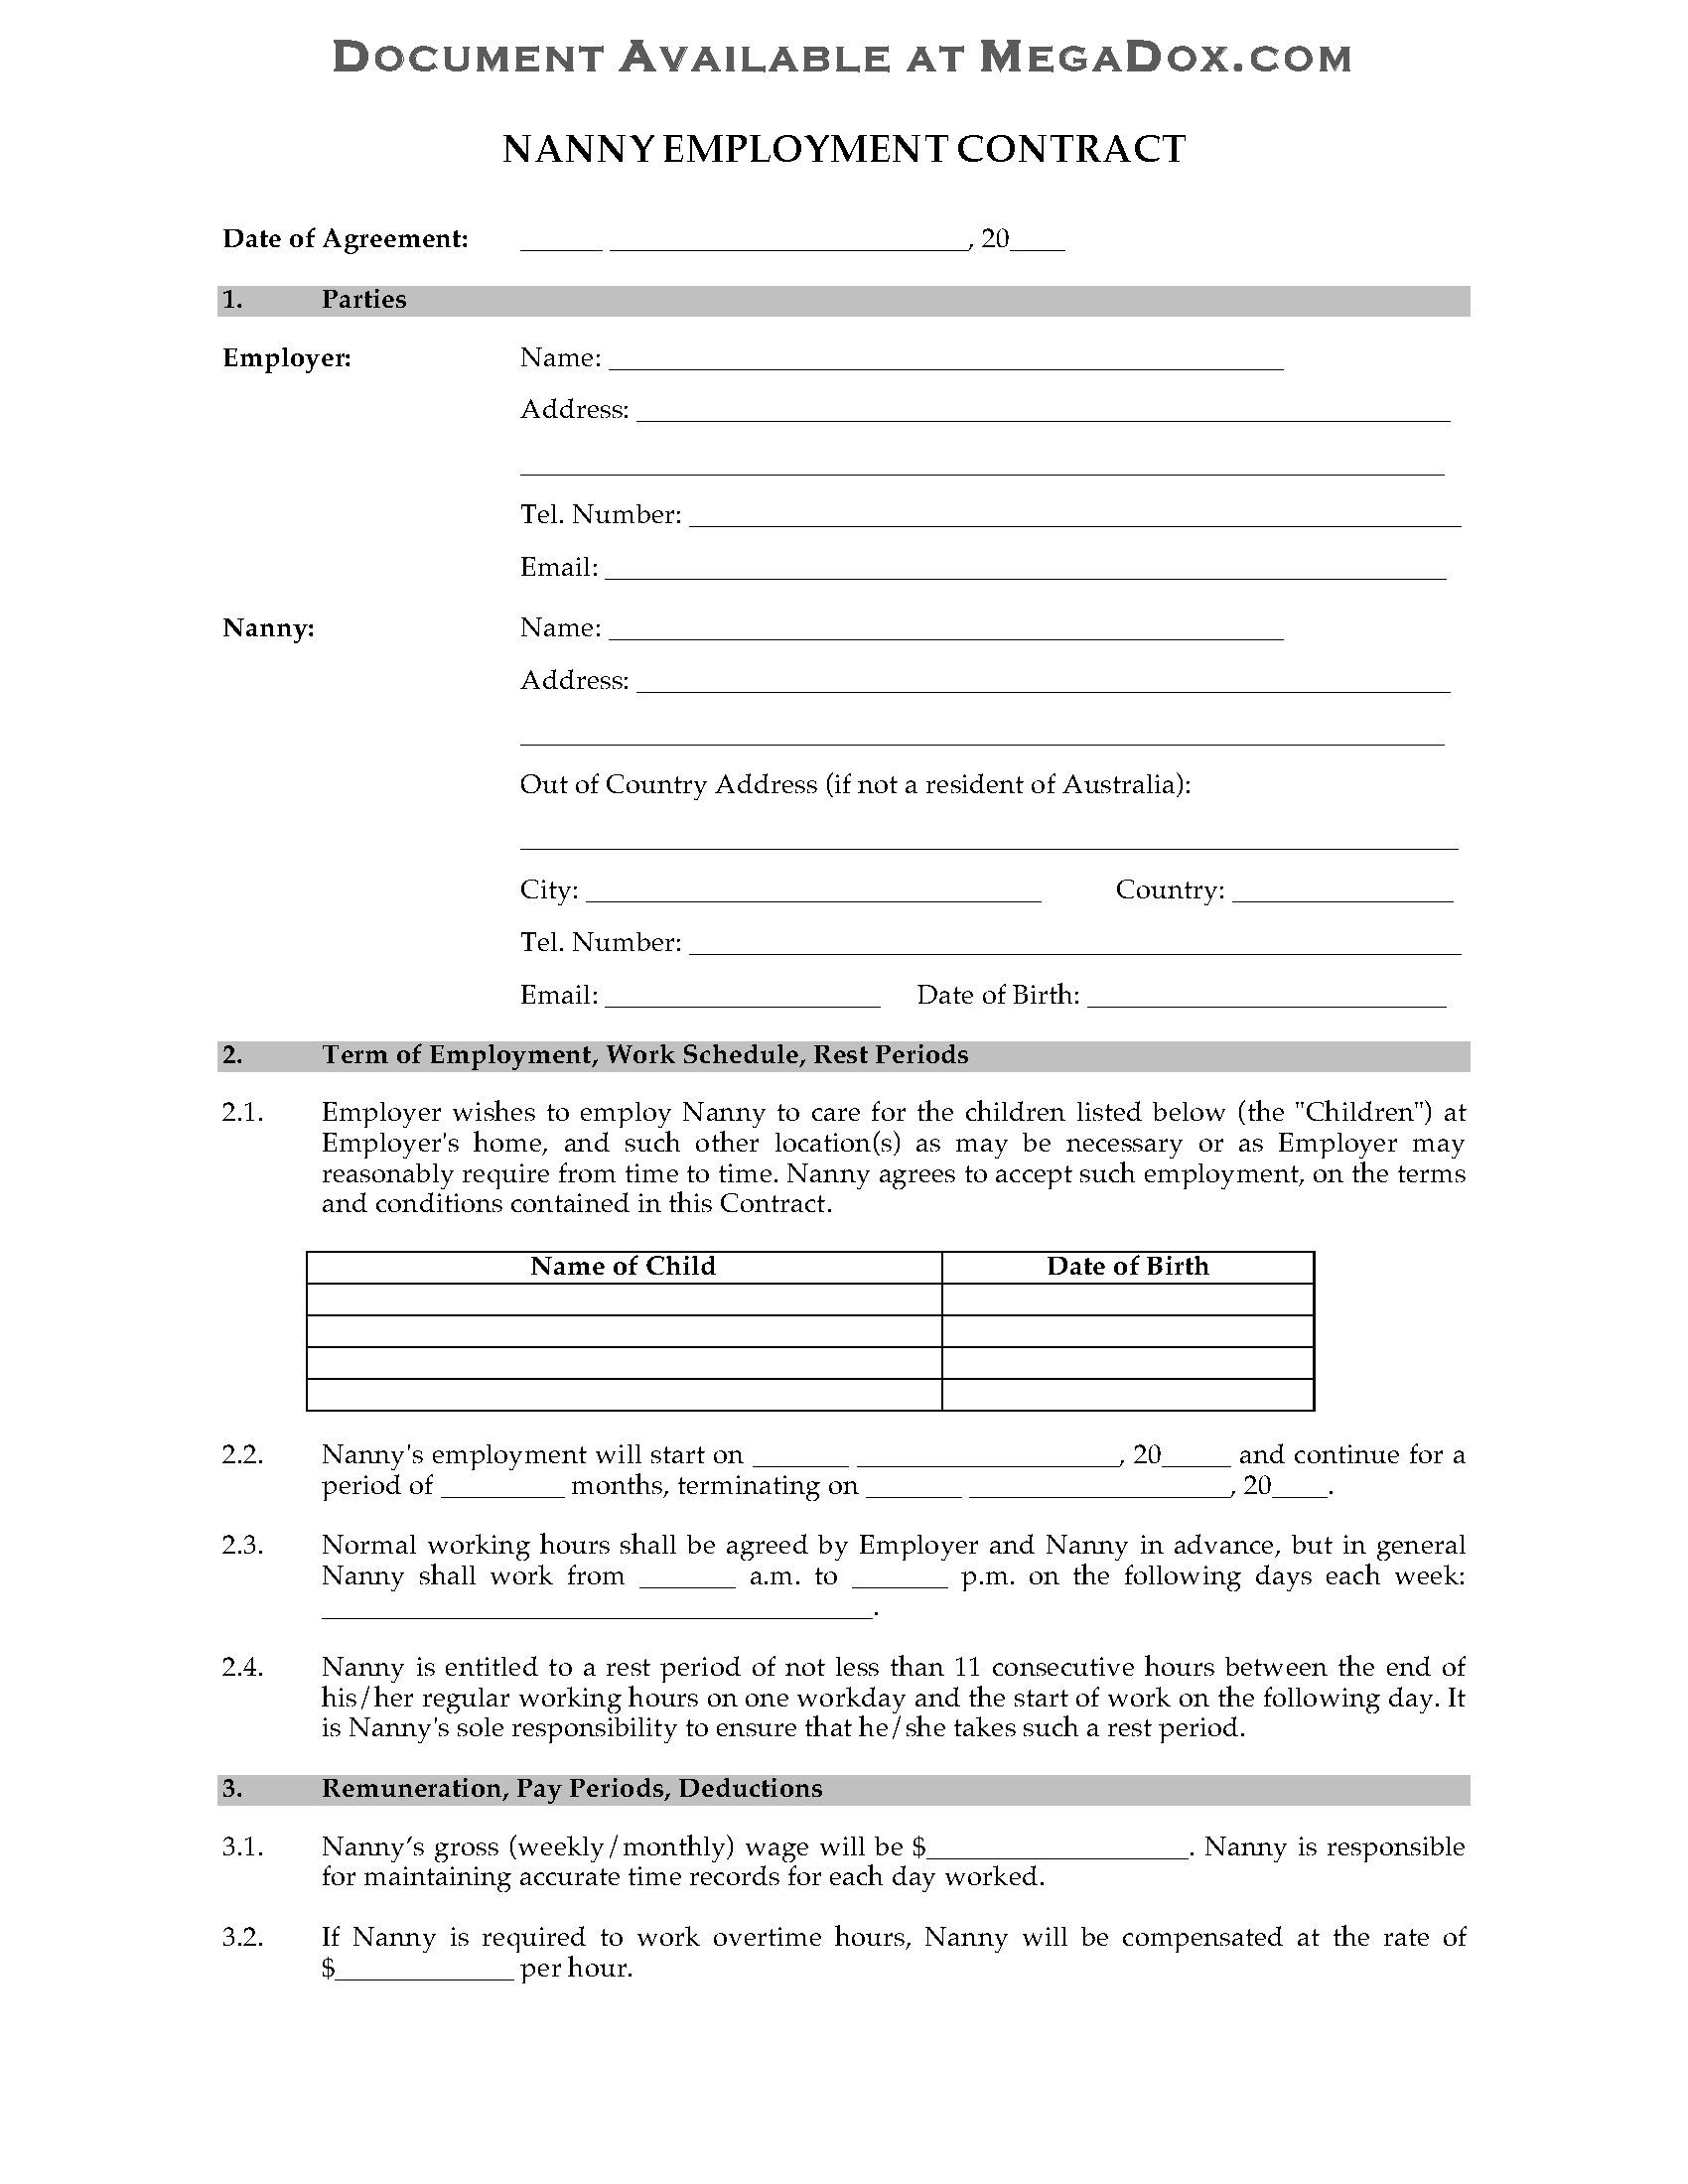 Australia Nanny Employment Contract For Nanny Contract Template